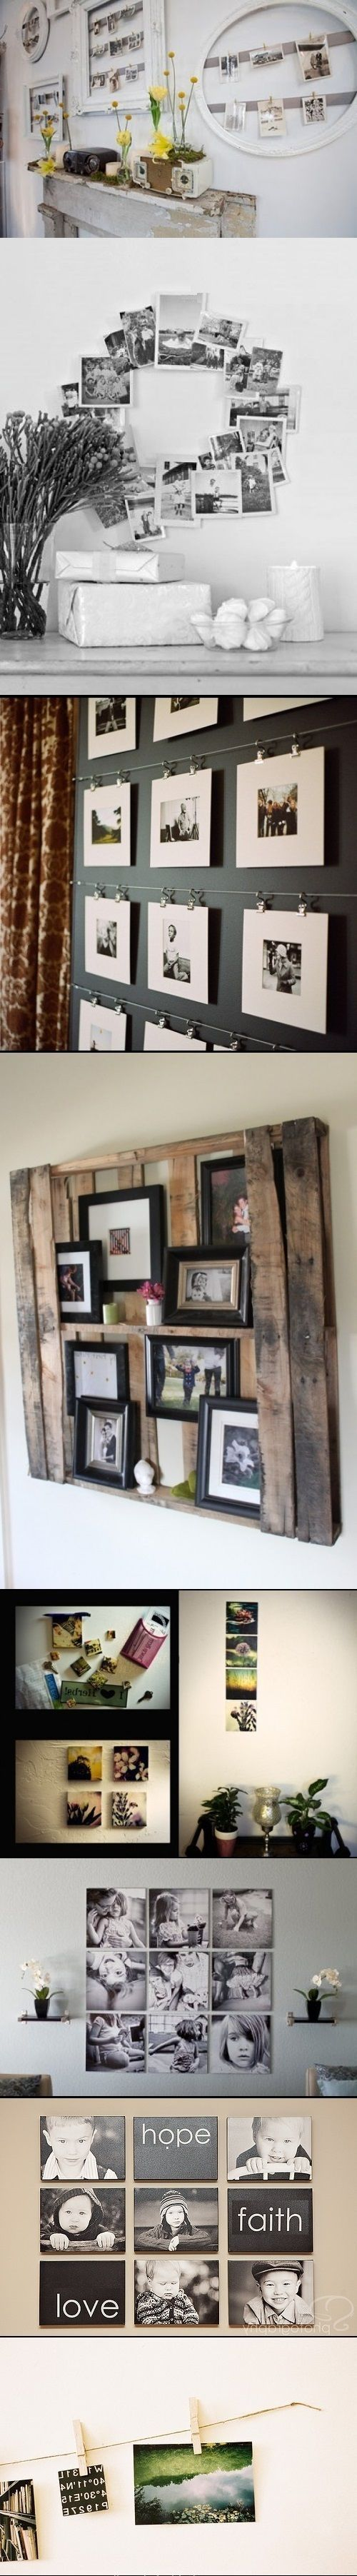 DIY Ideas to To Display Family Photos On Your Walls